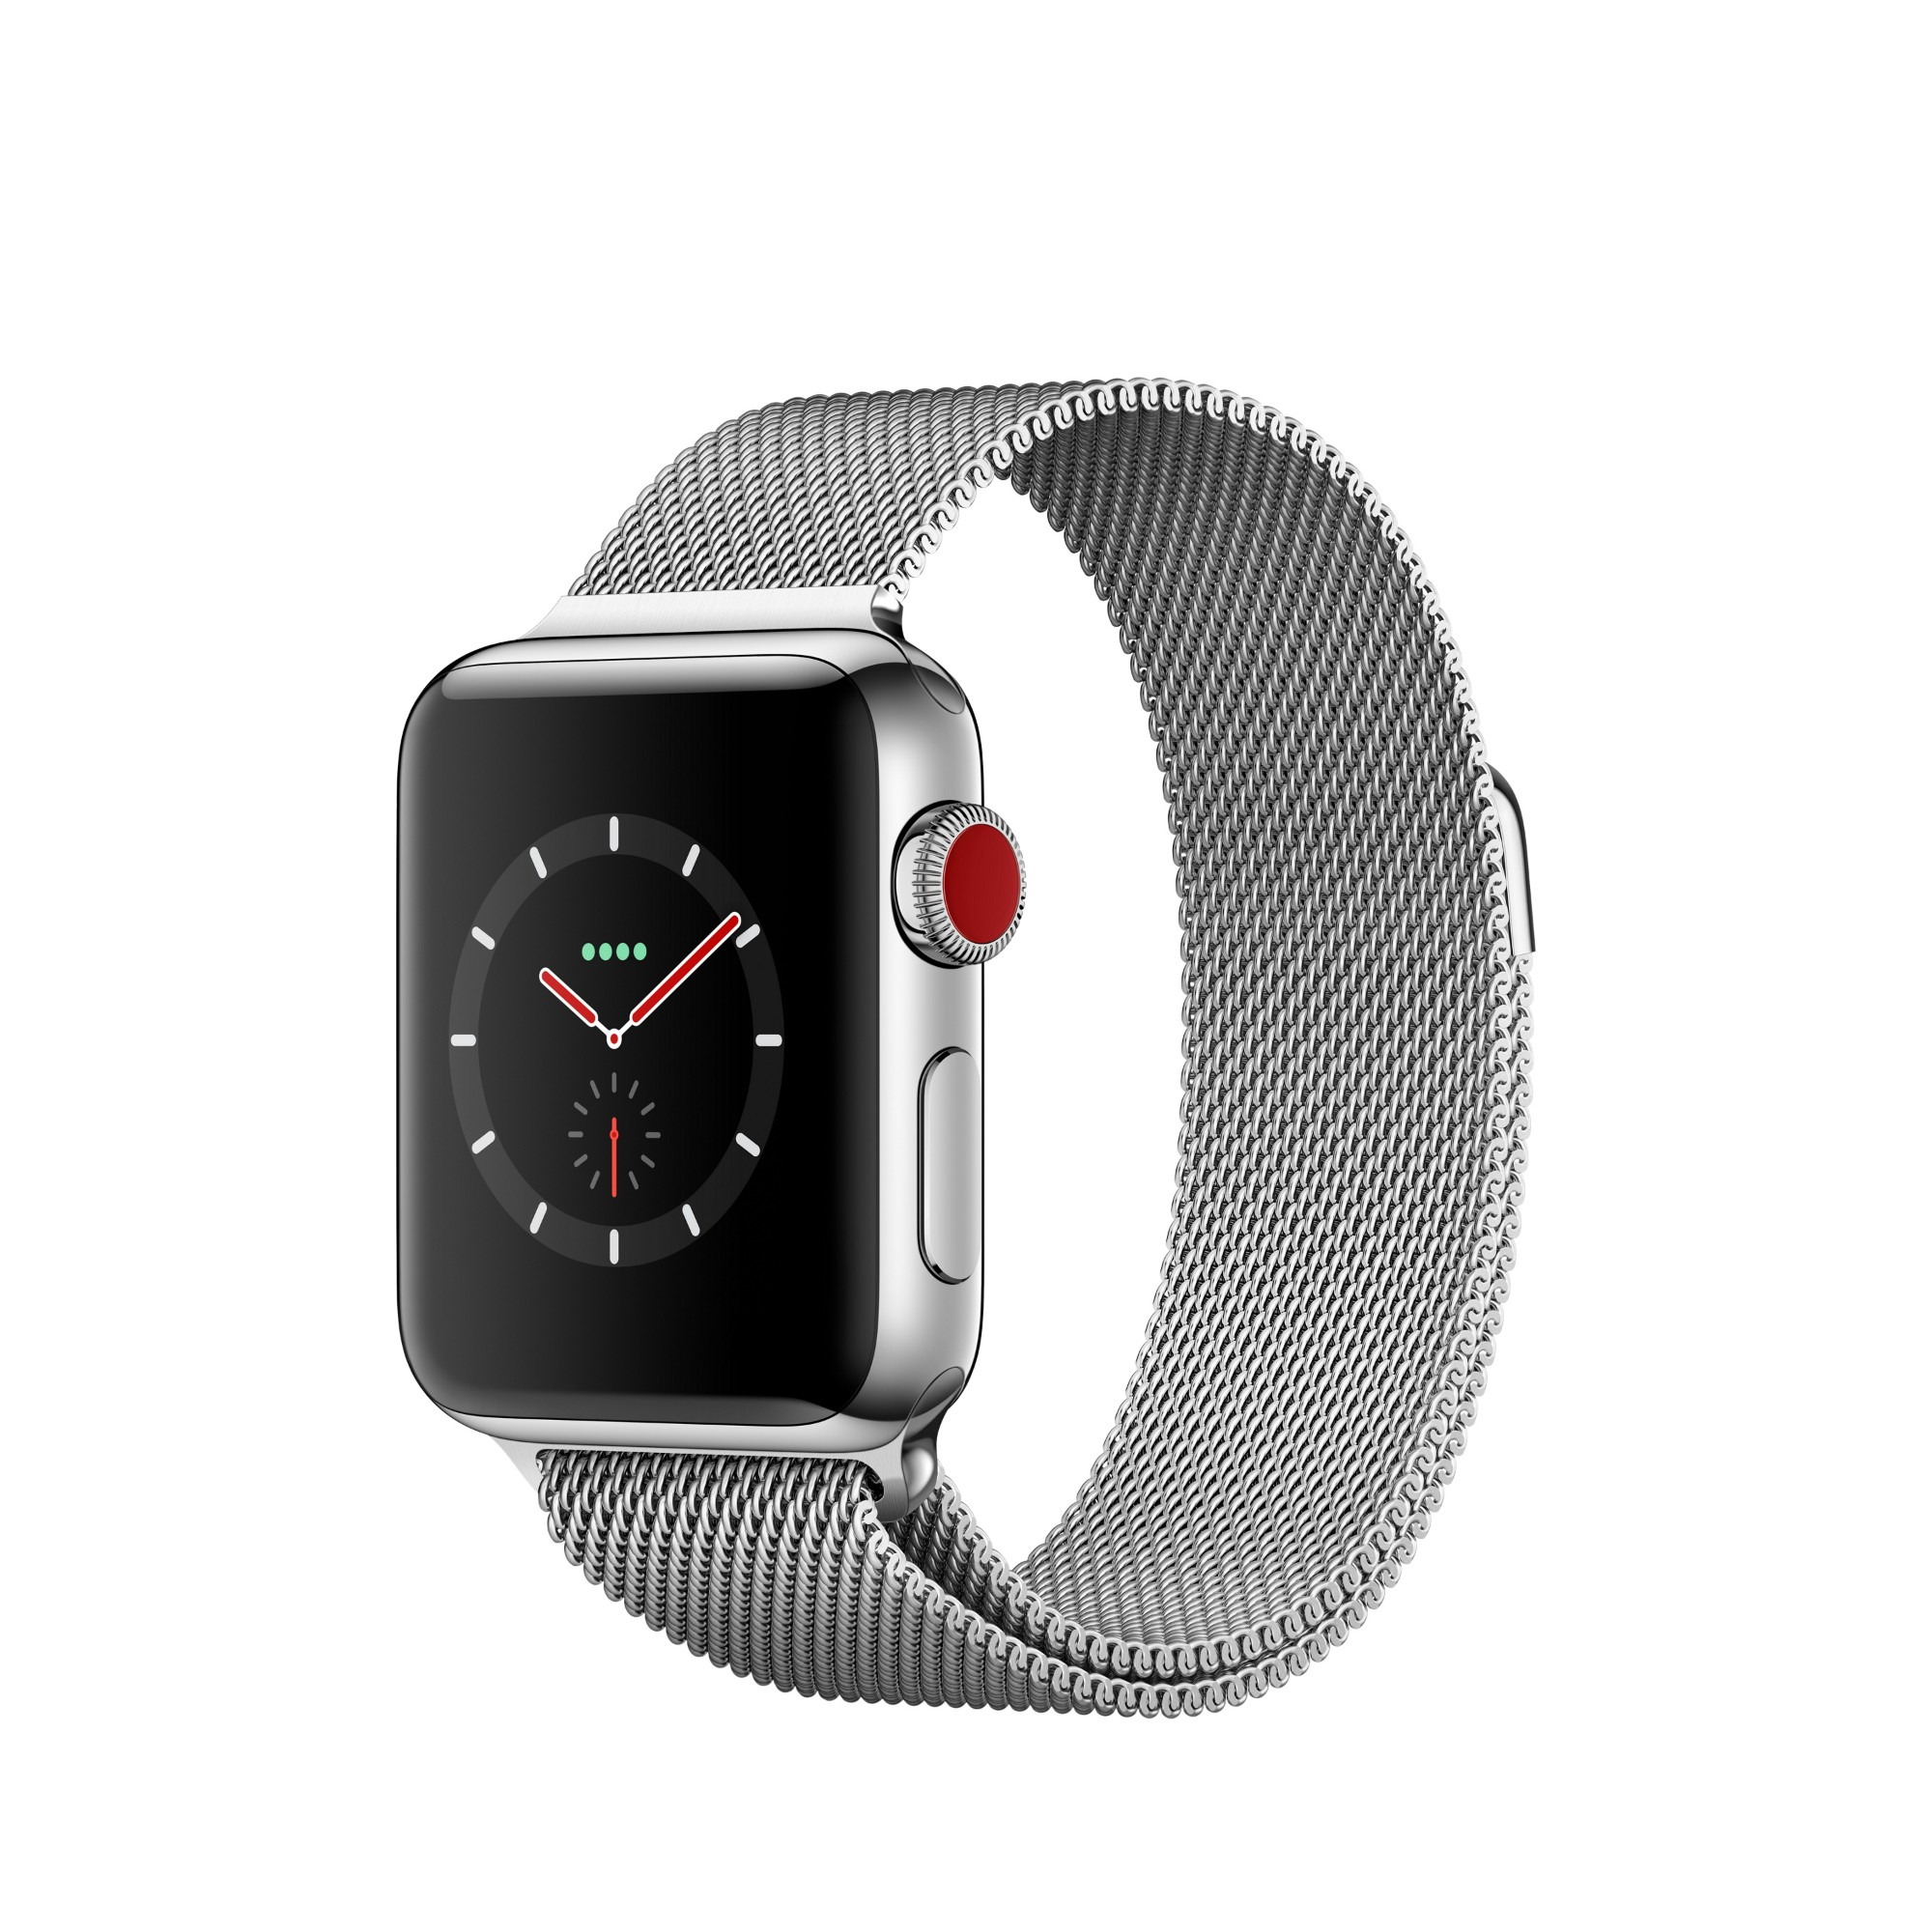 bb0e1da2c3999 Apple Watch Series 3 smartwatch Stainless steel OLED Cellular GPS  (satellite) - MR1N2B A